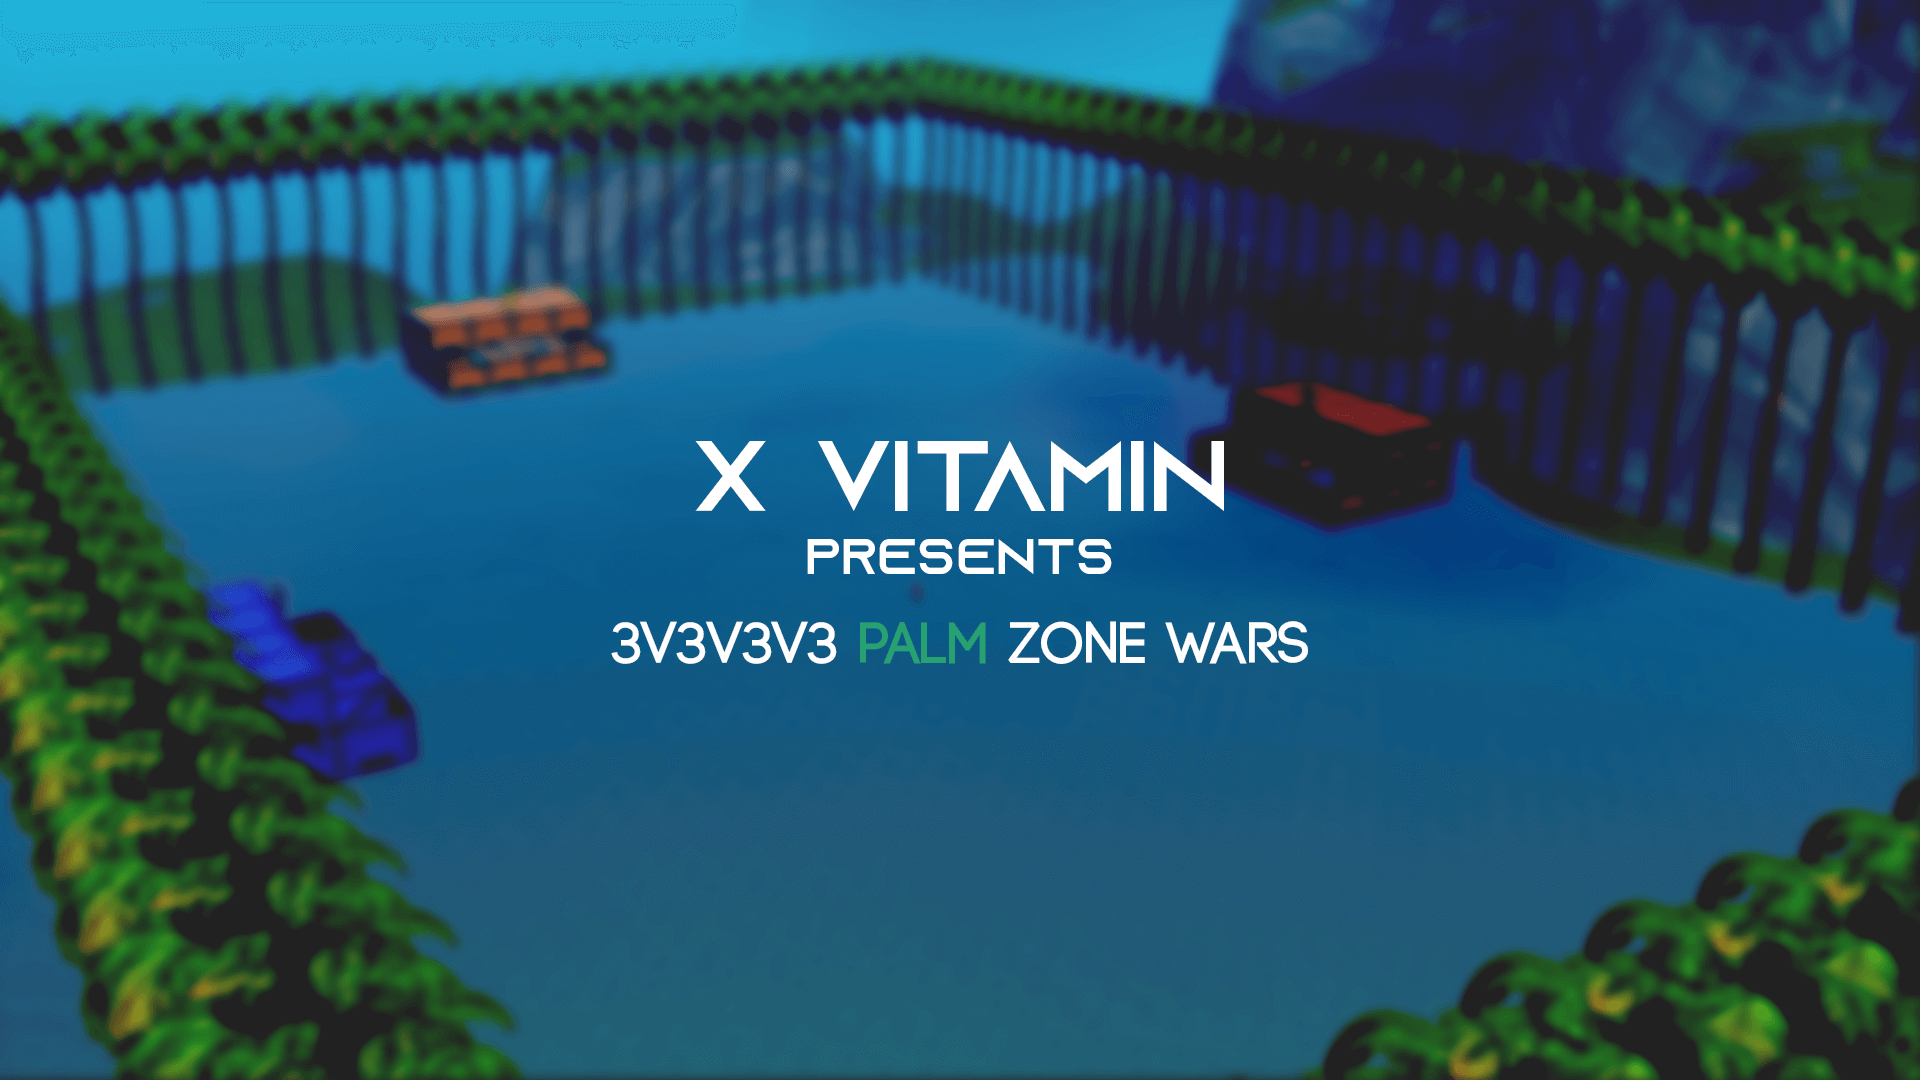 3V3V3V3 PALM ZONE WARS